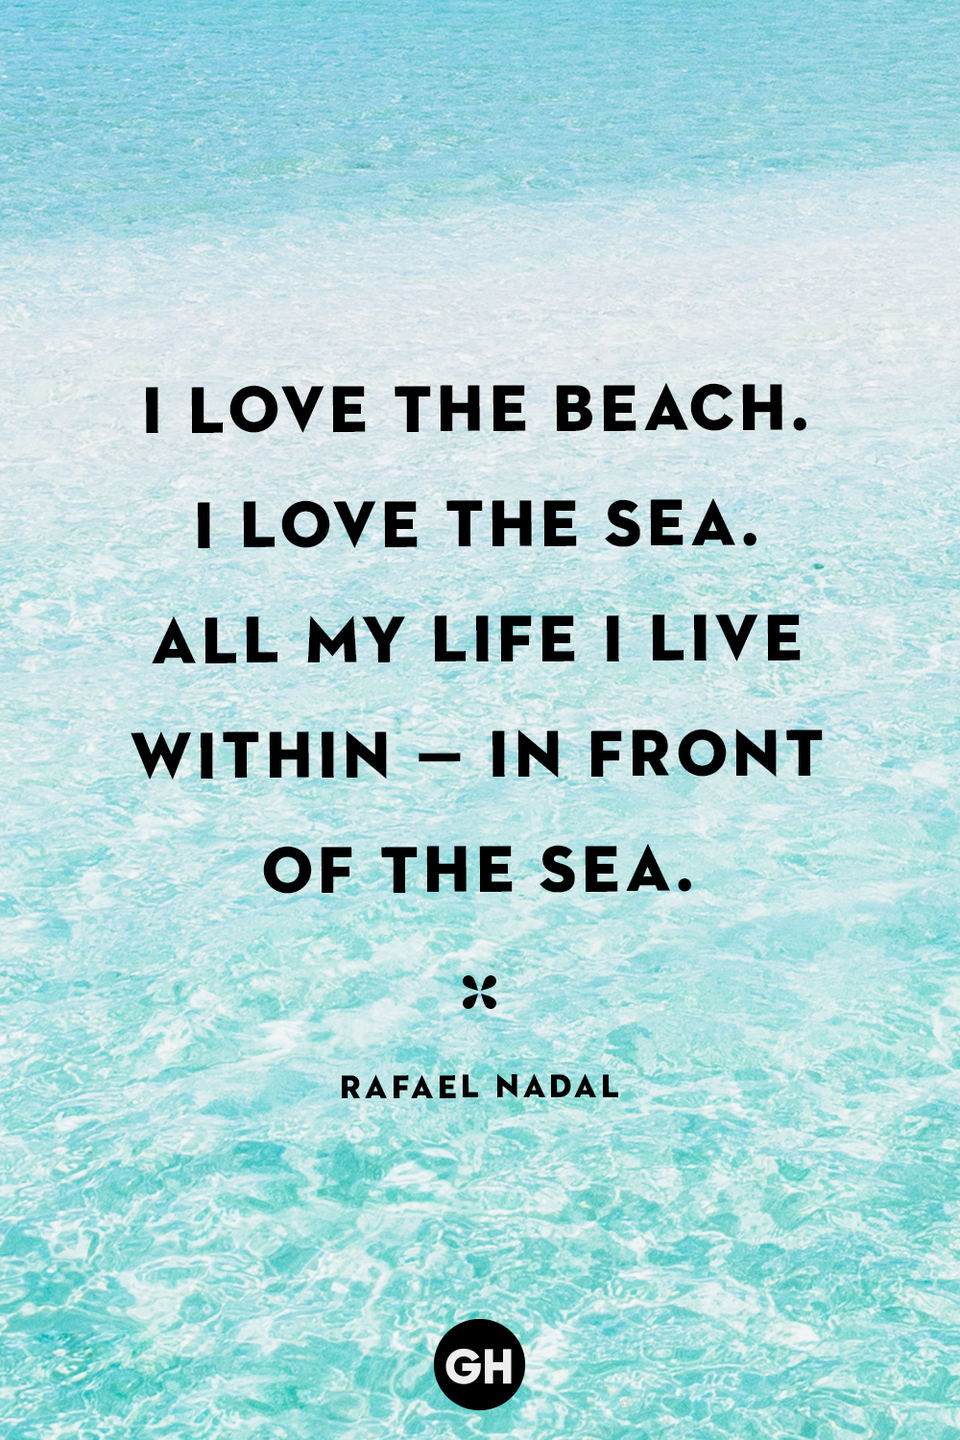 <p>I love the beach. I love the sea. All my life I live within — in front of the sea.</p>